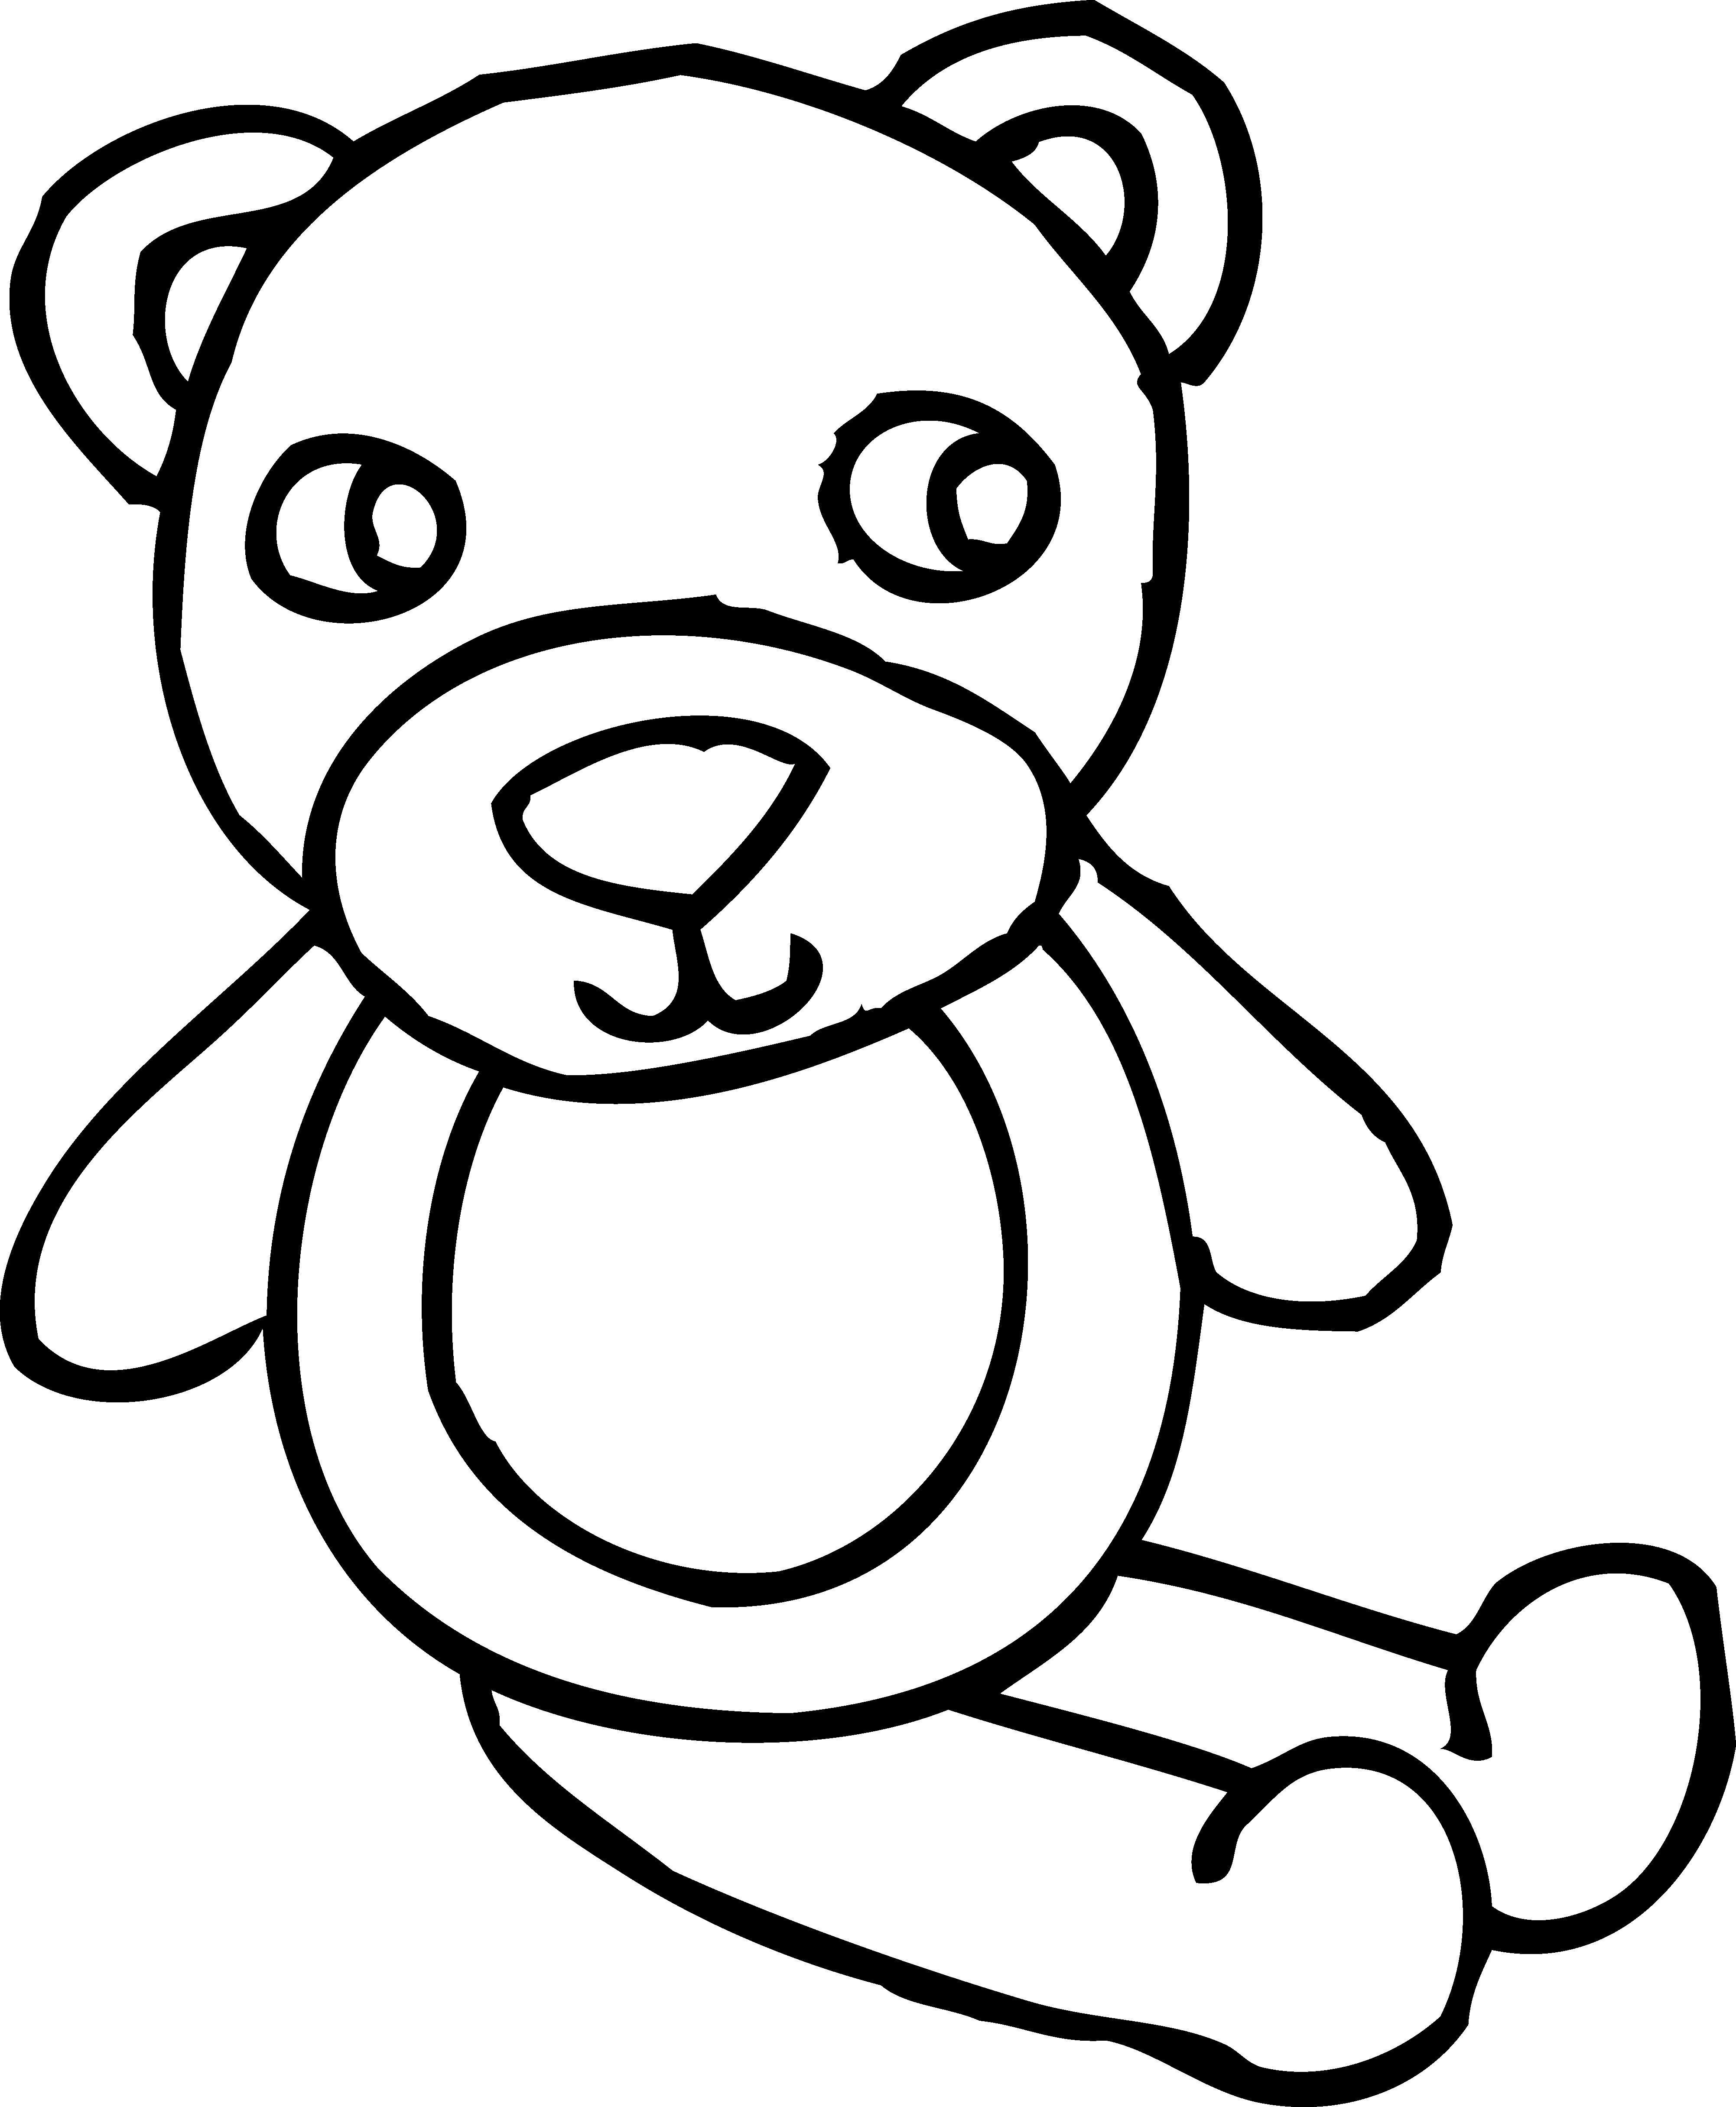 Free Outline Of A Teddy Bear Download Free Clip Art Free